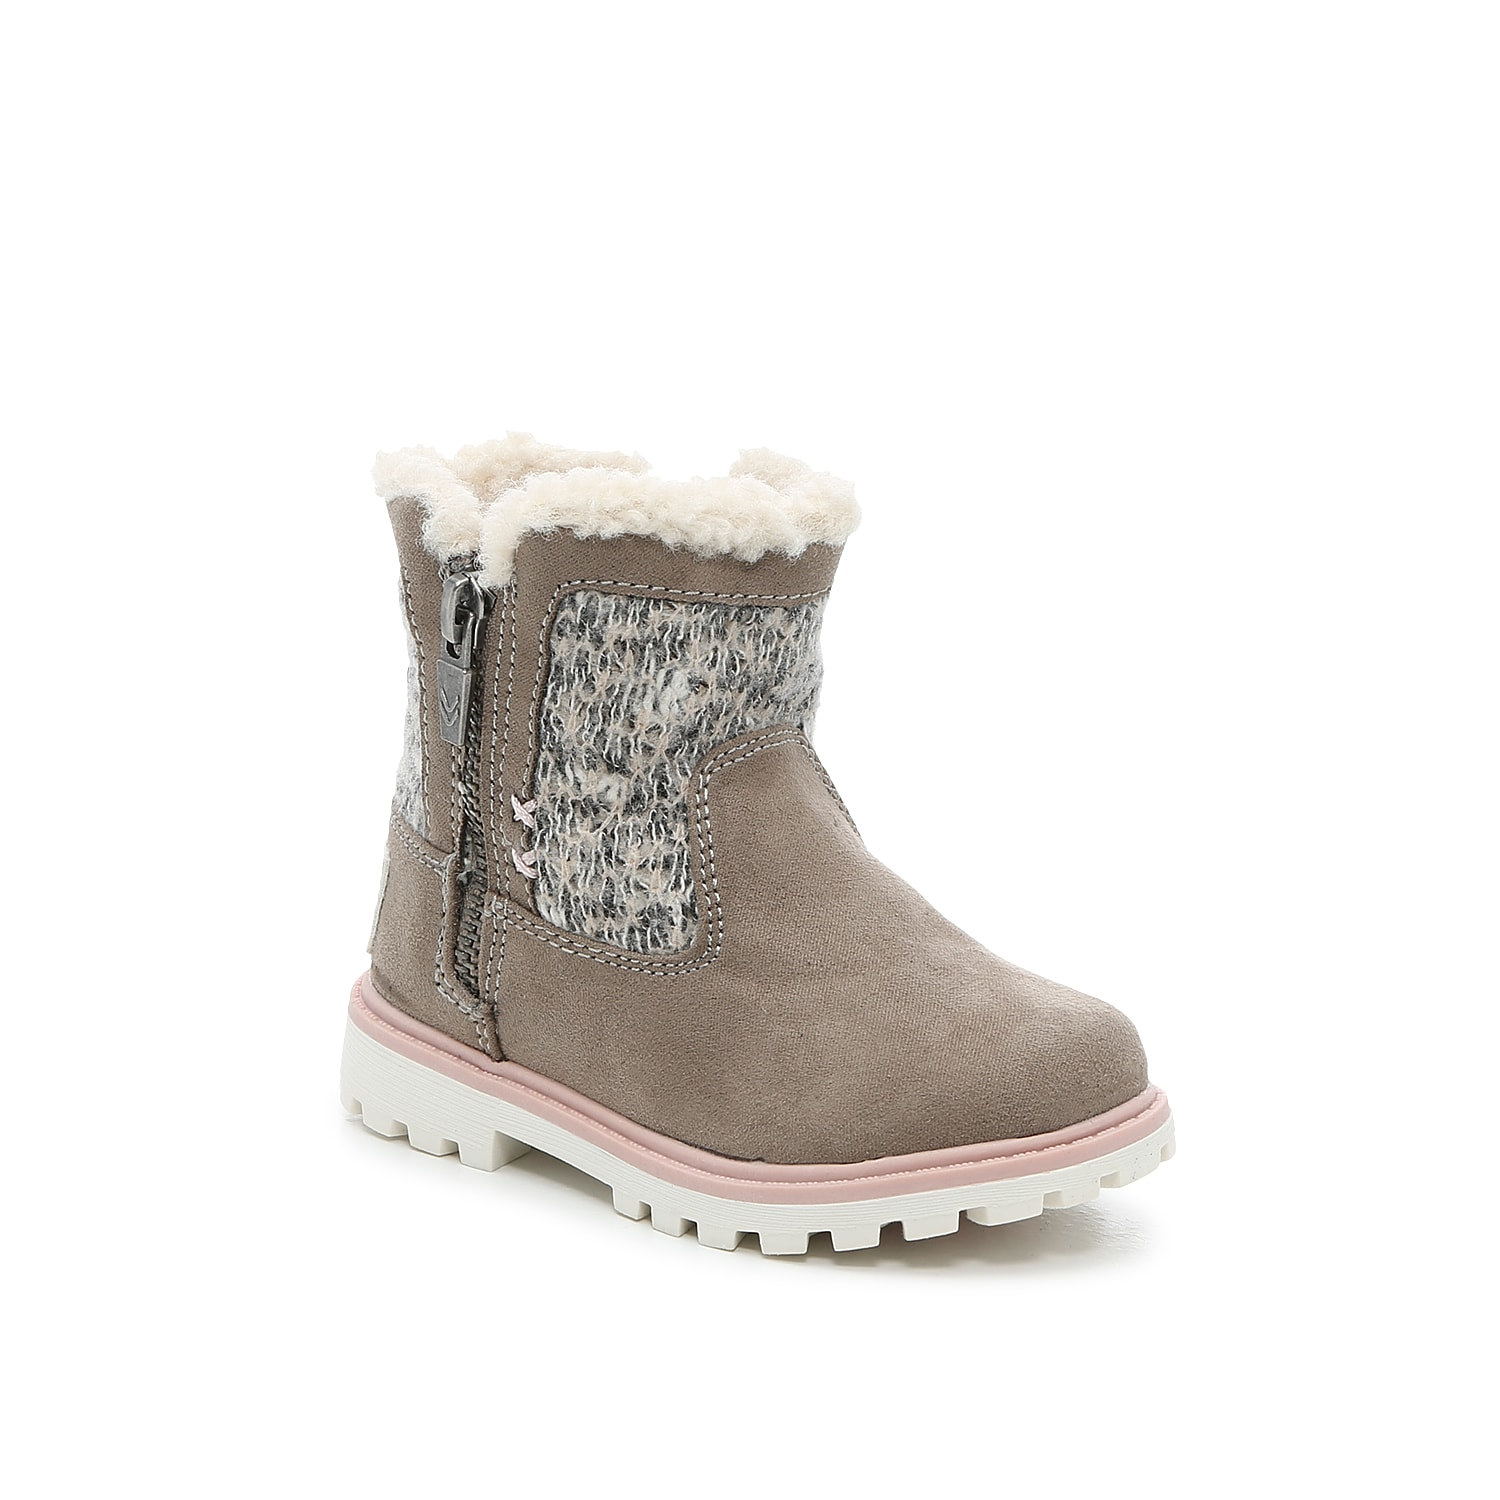 Your little one will love the cold weather season when dressing up in the Kendal boot from Dr. Scholl\\\'s. Sweater-knitted panels and a cuff of faux fur give this pair all the cozy vibes, while a durable outsole provides traction. Not sure which size to order? Click here to check out our Kids' Measuring Guide! For more helpful tips and sizing FAQs, click here.